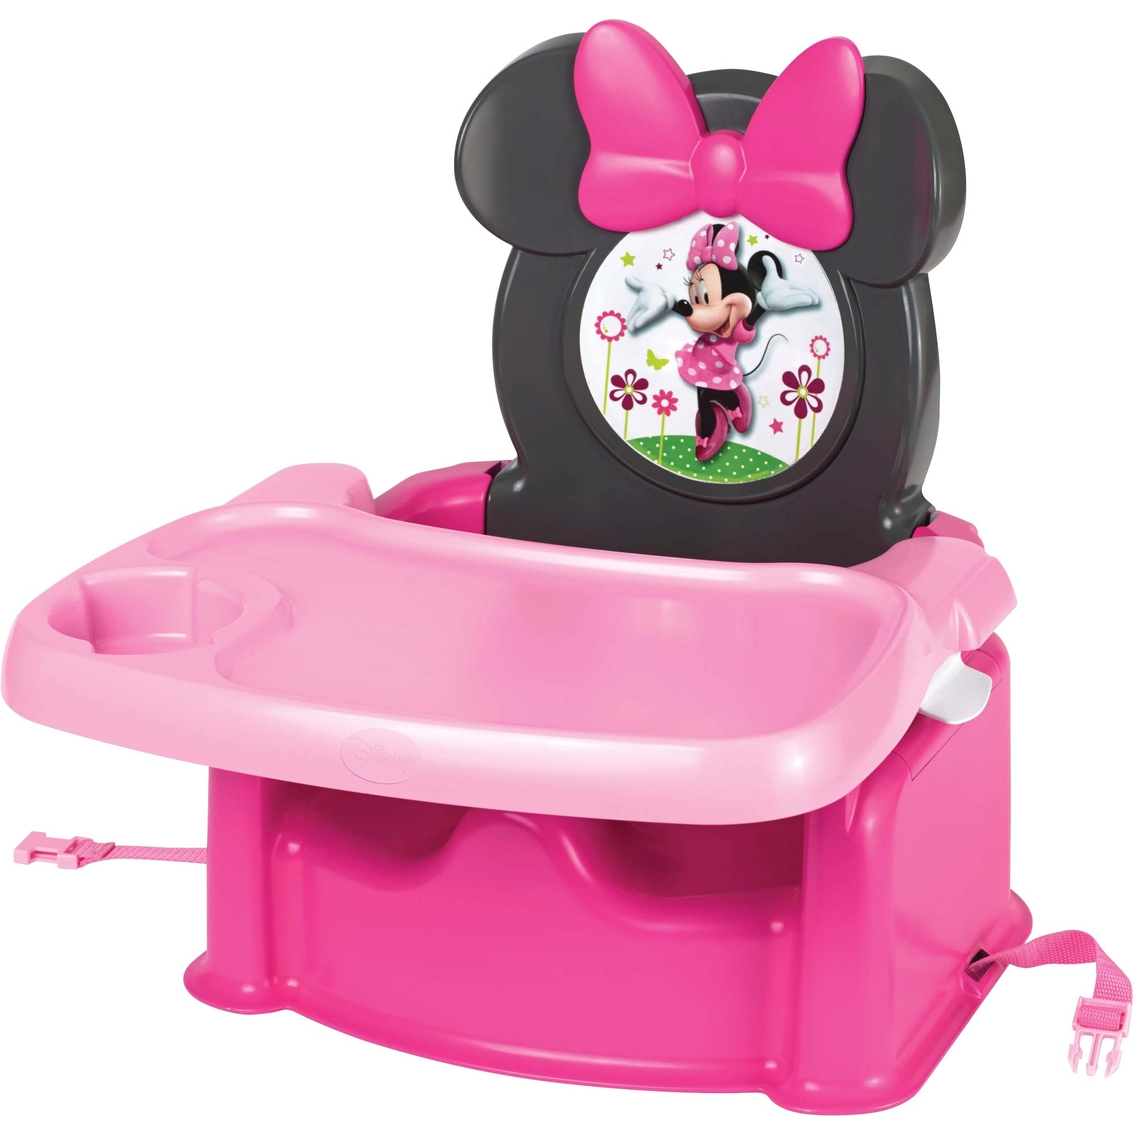 Mickey Mouse Chairs For Toddlers The First Years Disney Minnie Mouse Booster Seat Booster Seats